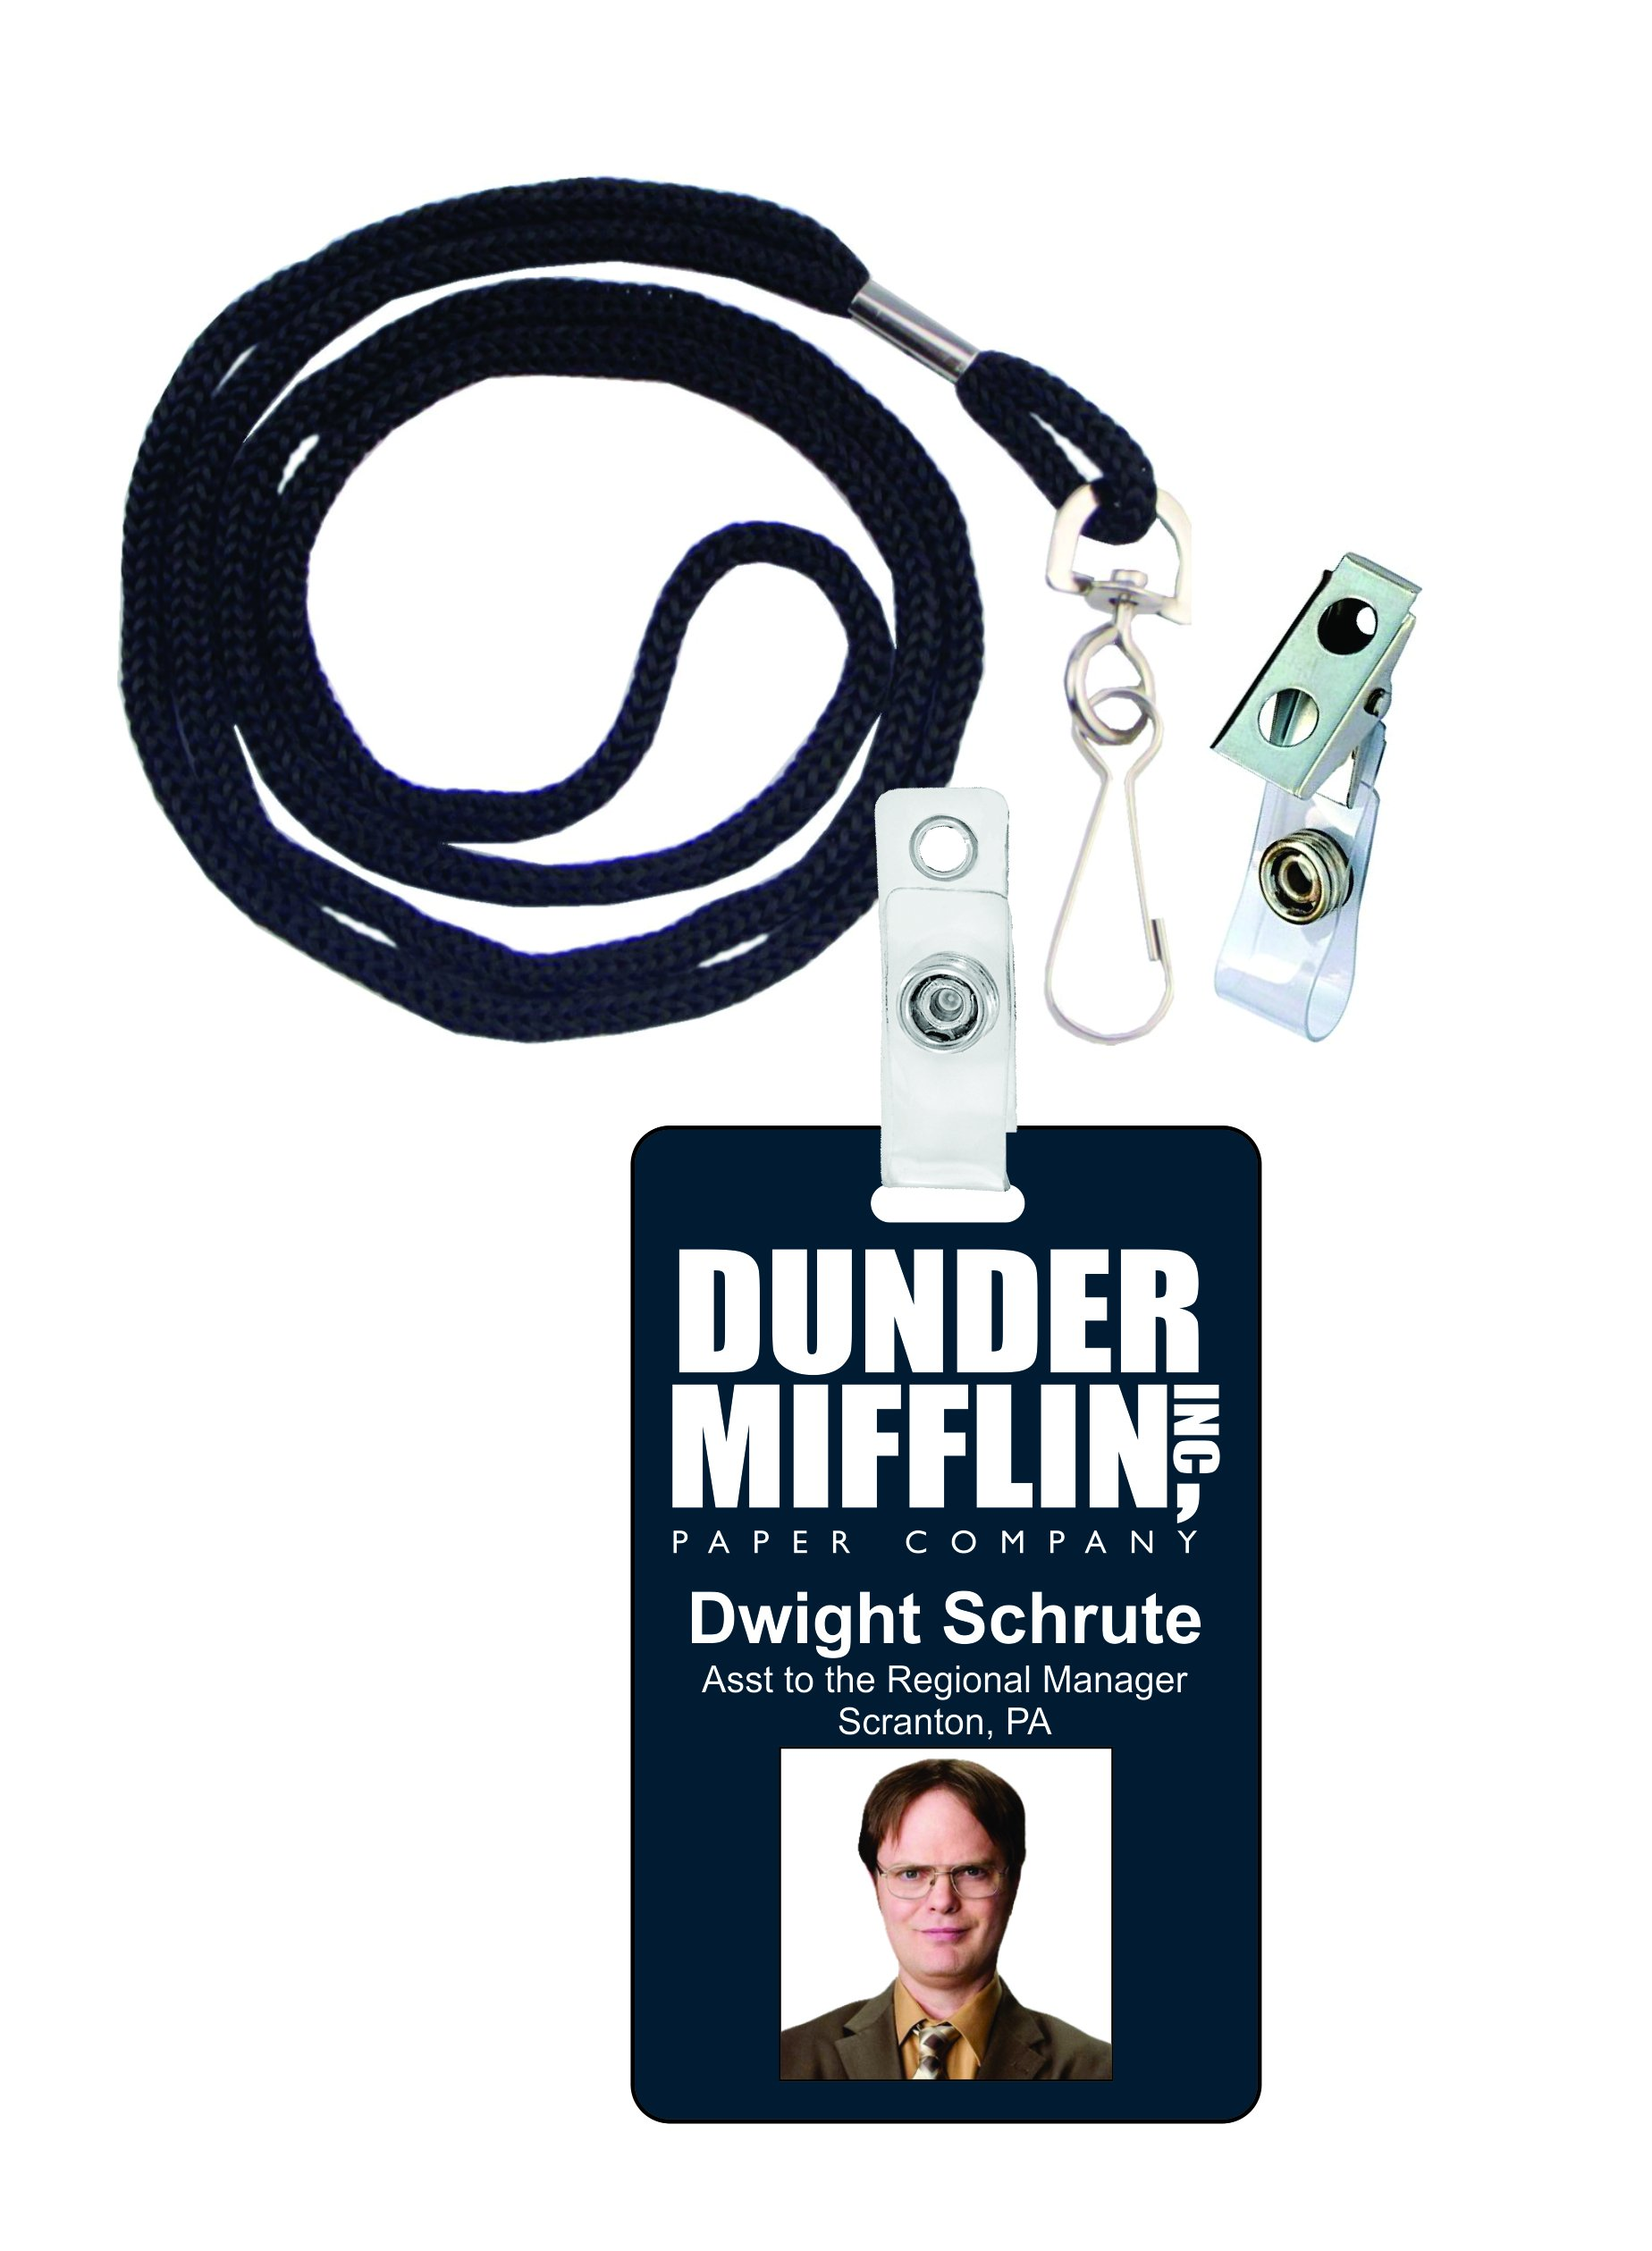 Dwight Schrute The Office Novelty ID Badge Film Prop for Costume and Cosplay • Halloween and Party Accessories